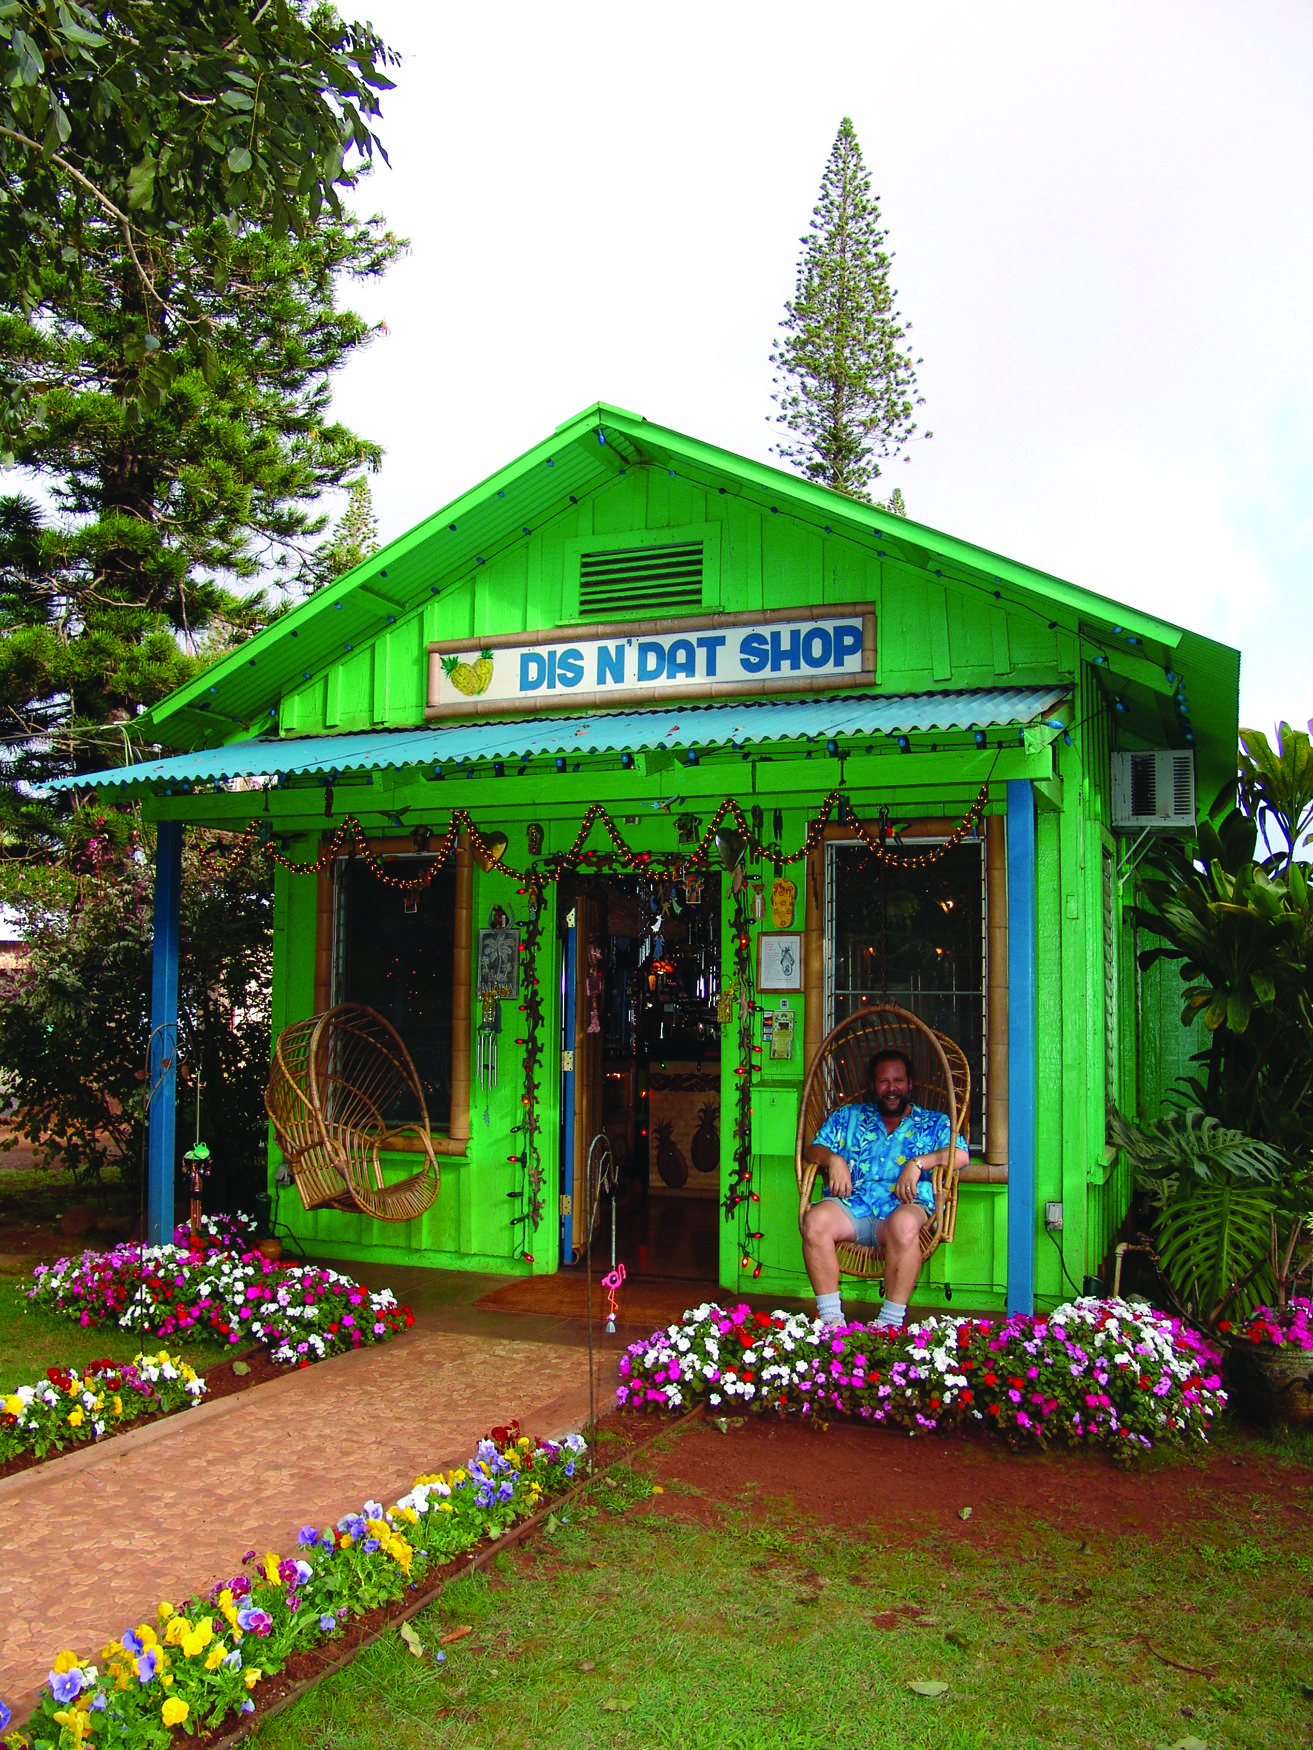 The Dis N Dat Shop In Lanai City Is An Amazing Eclectic And Unique Shop Also Highly Recommended By Frommer S Guide To Hawaii Lanai City Lanai Hawaiian Homes